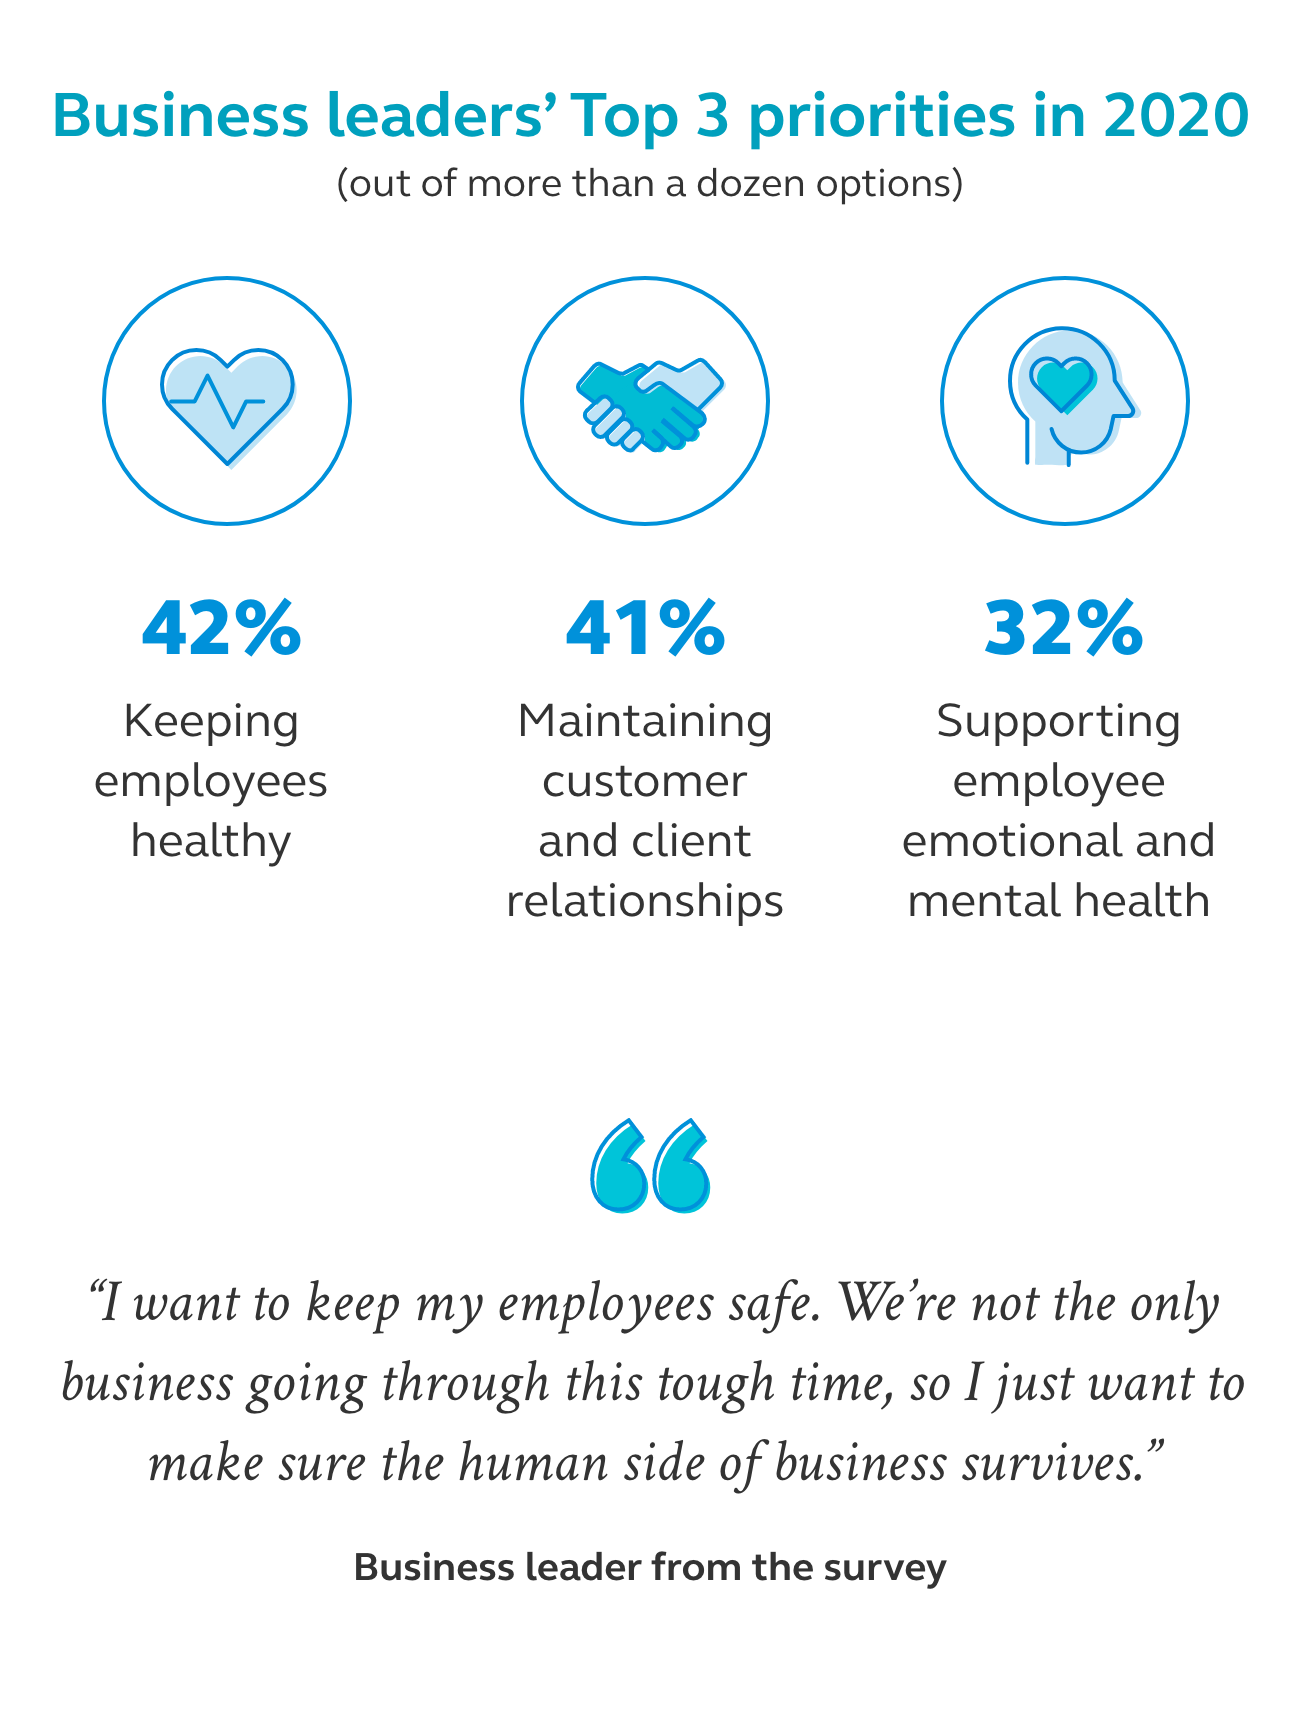 Graphic showing that business leaders top 3 priorities in 2020 are keeping employees healthy, maintaining customer and client relationships, and supporting employee emotional and mental health.